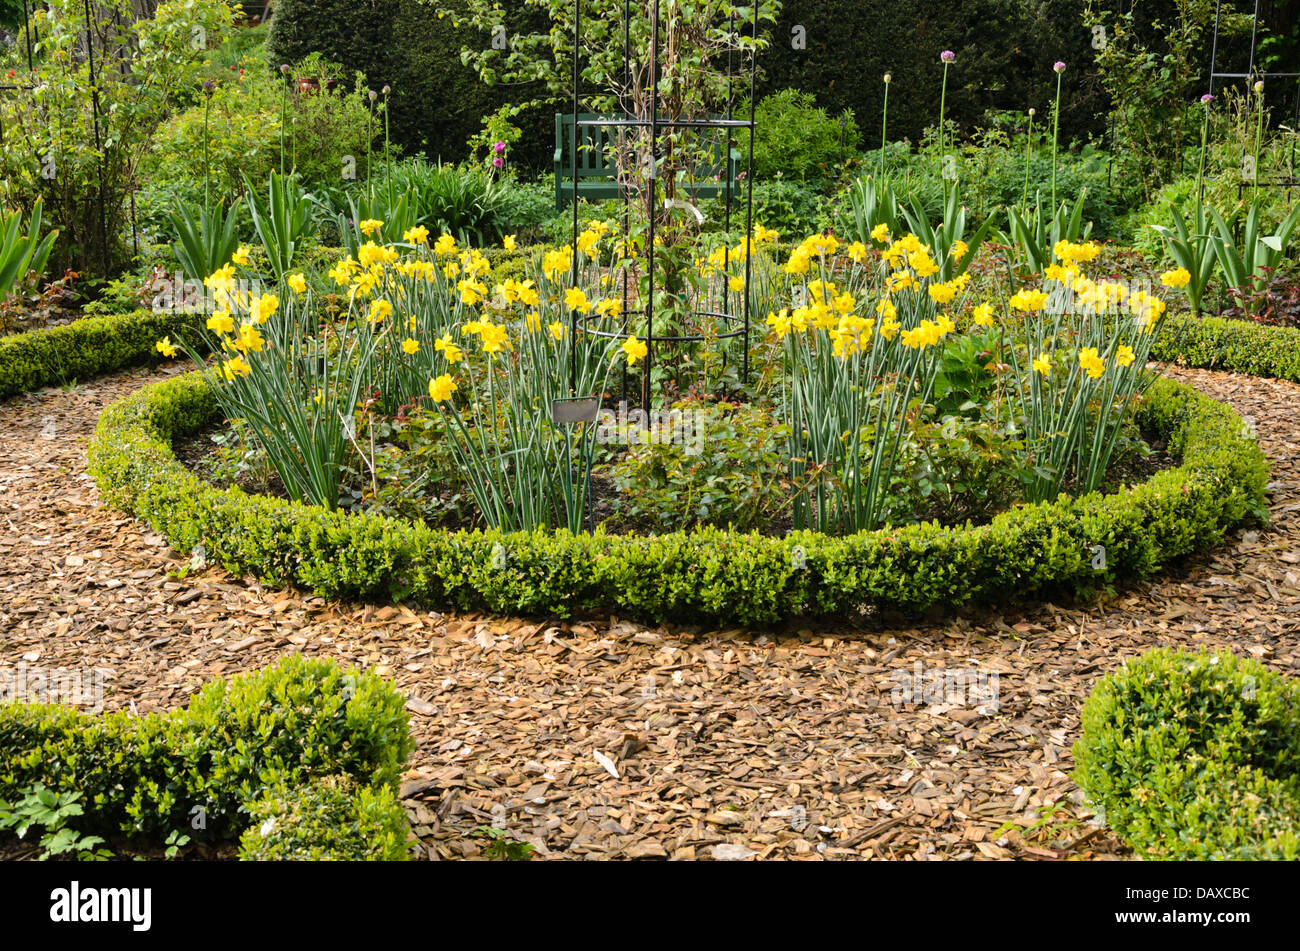 Rose Garden Design rose garden design Daffodils Narcissus And Boxwood Buxus In A Rose Garden Design